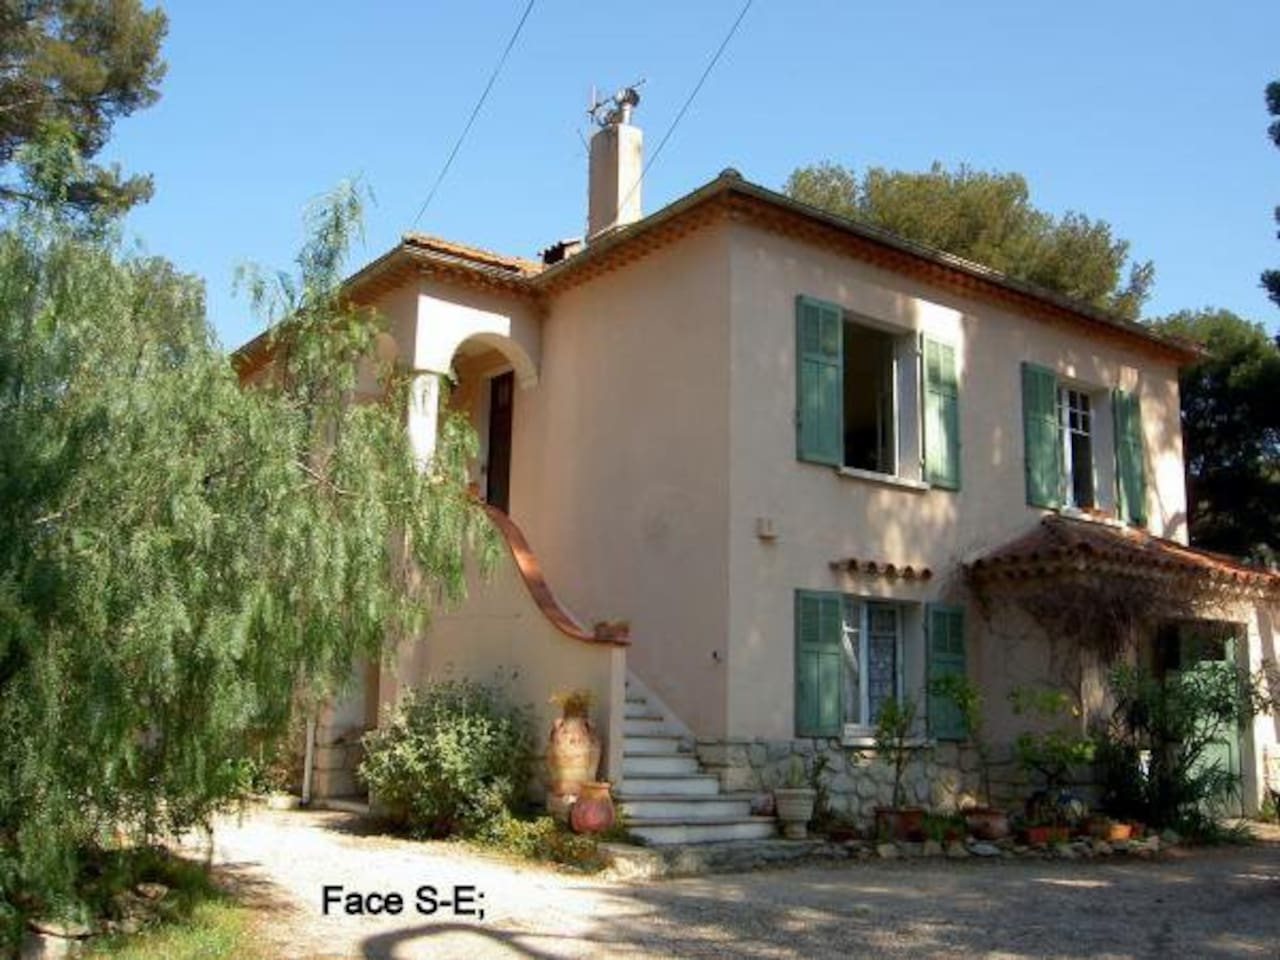 Appartement au 1ier étage de la Villa à 400m de la mer / One flat with 2 rooms at the first step o my house. 400 m from the sea